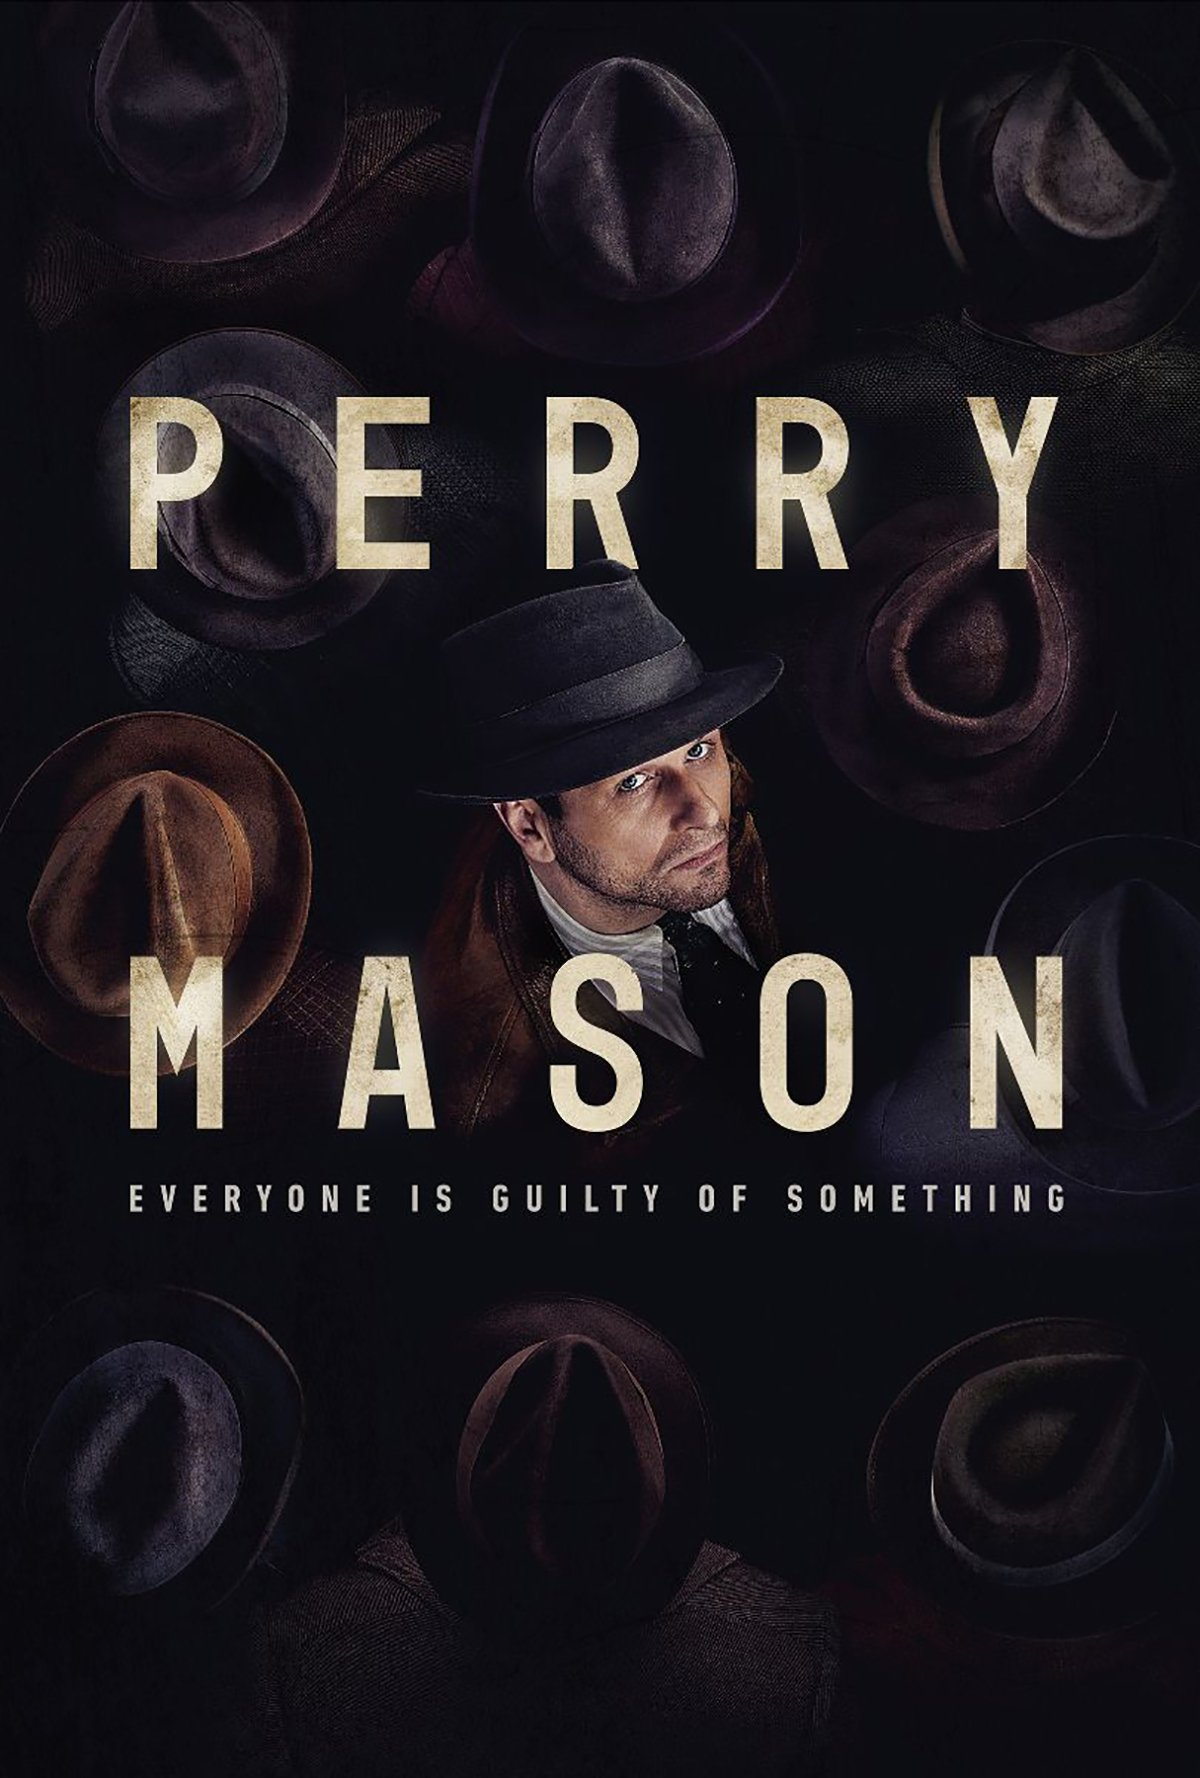 Perry Mason (TV Series 2020– ) - IMDb